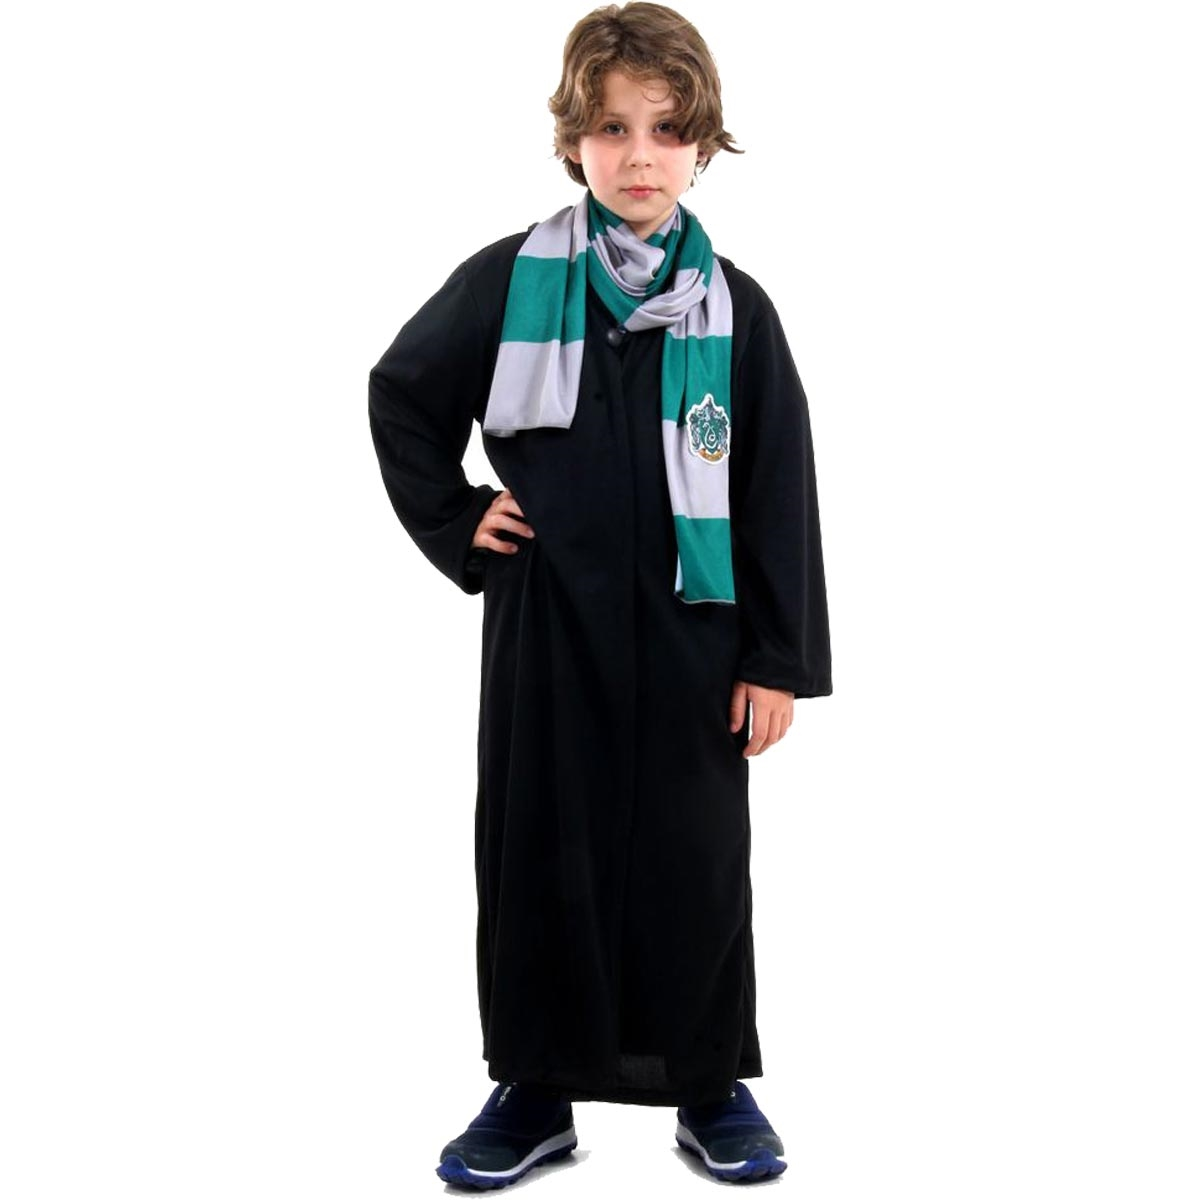 Fantasia Harry Potter Infantil Draco Malfoy Fantasiascarol